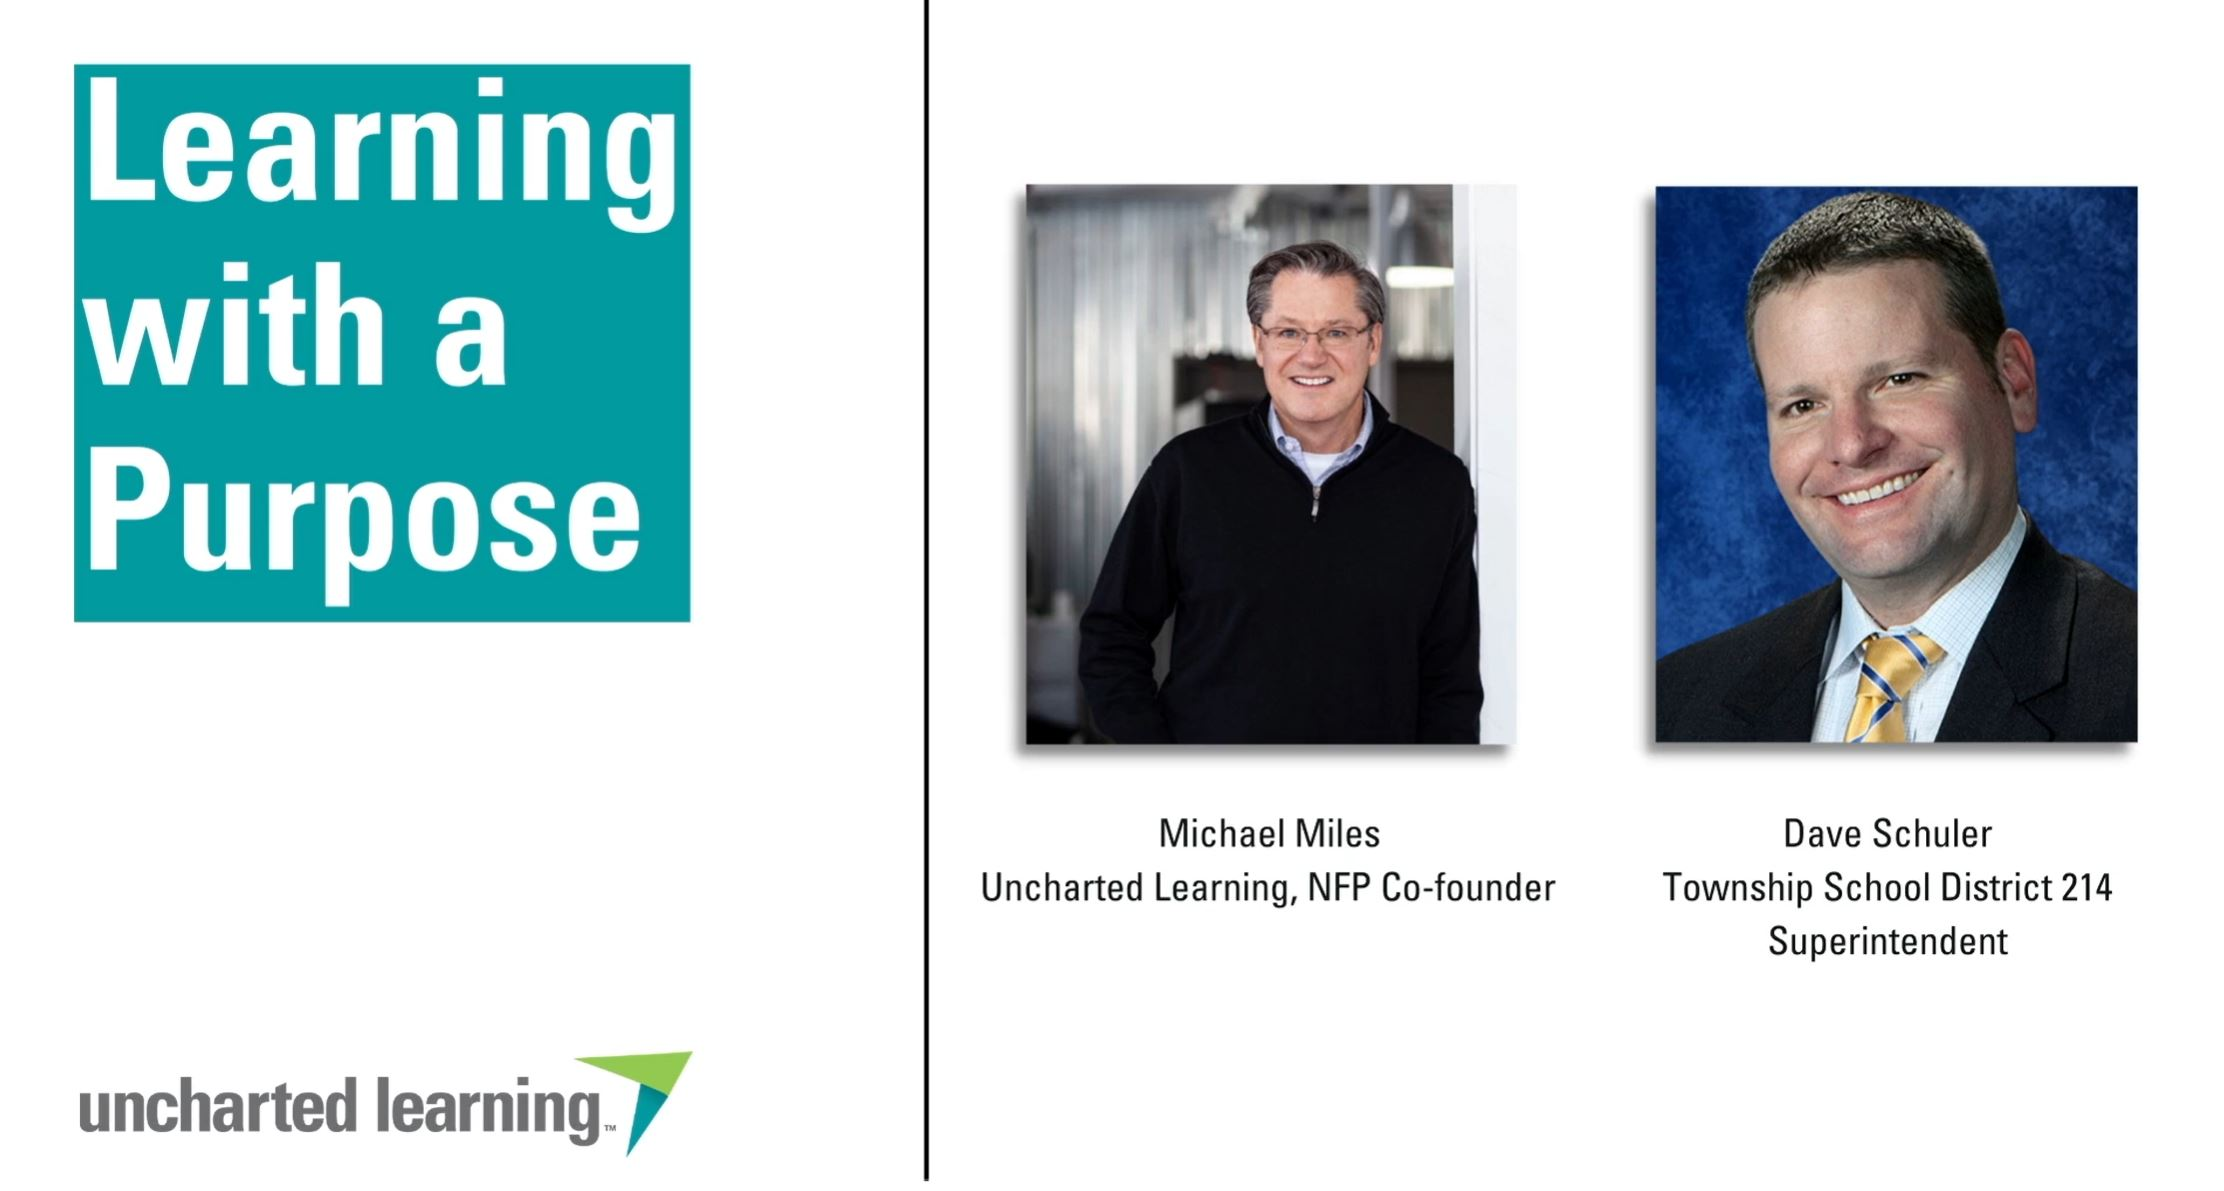 [Webinar Highlights] Learning with a Purpose — Entrepreneurship & Embracing What We Learn from Uncertainty